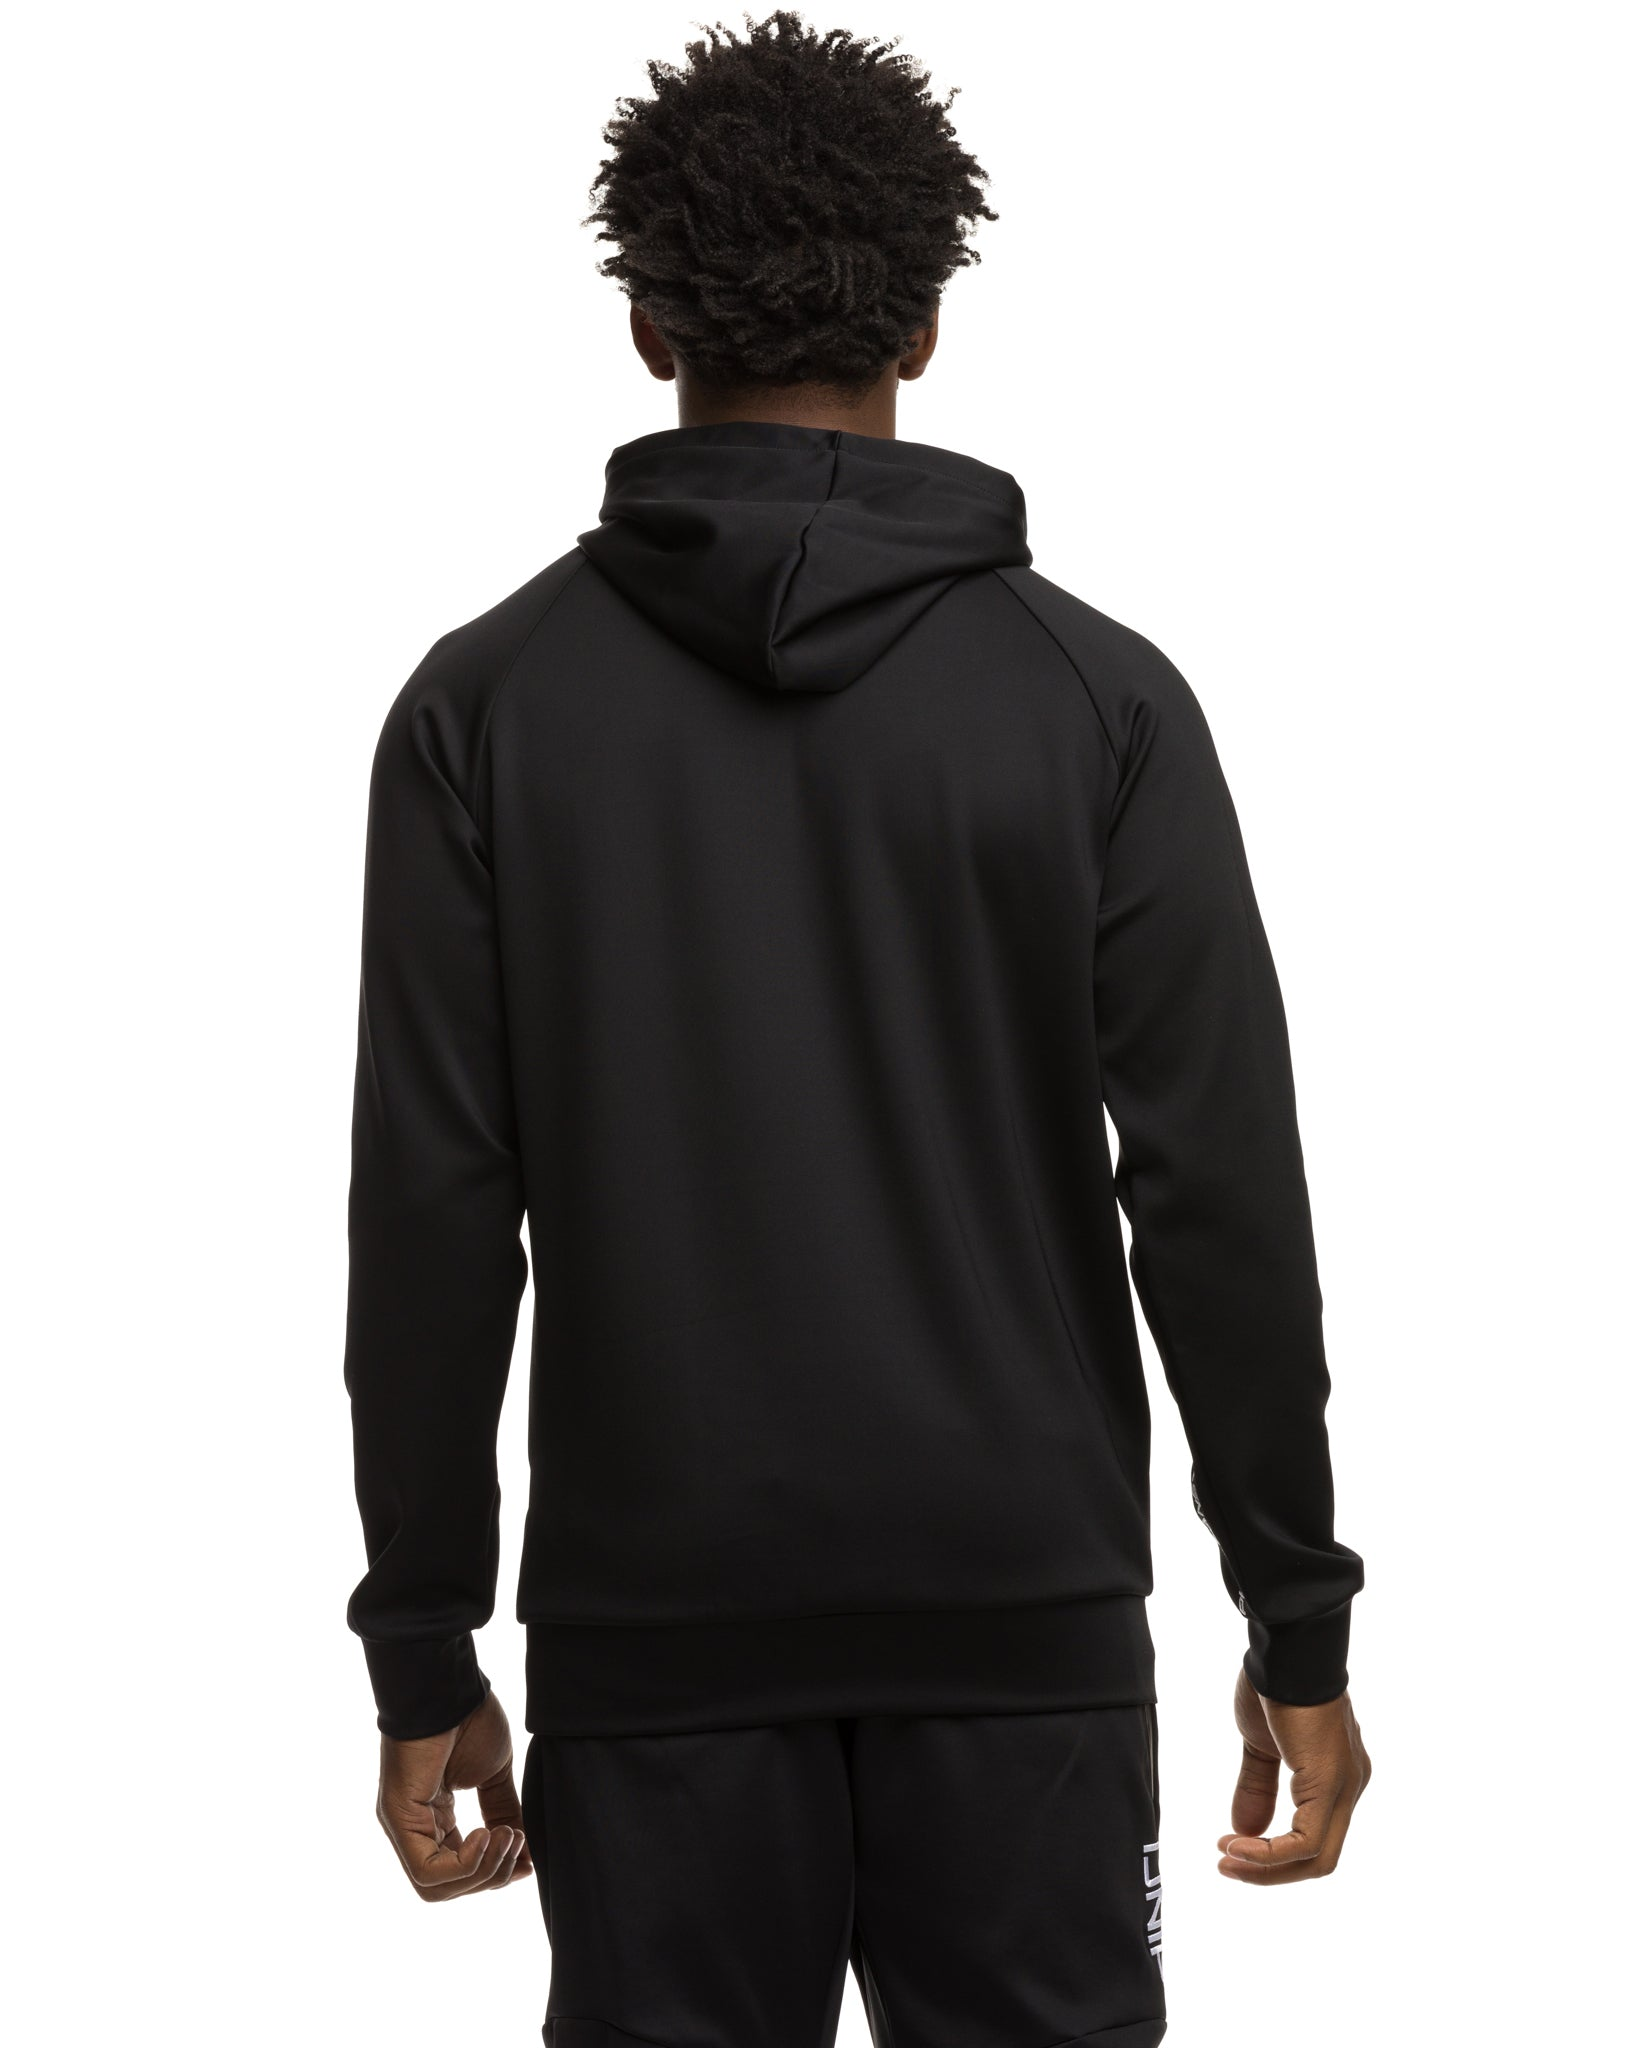 Men's I Can Box Logo Performance Hoodie